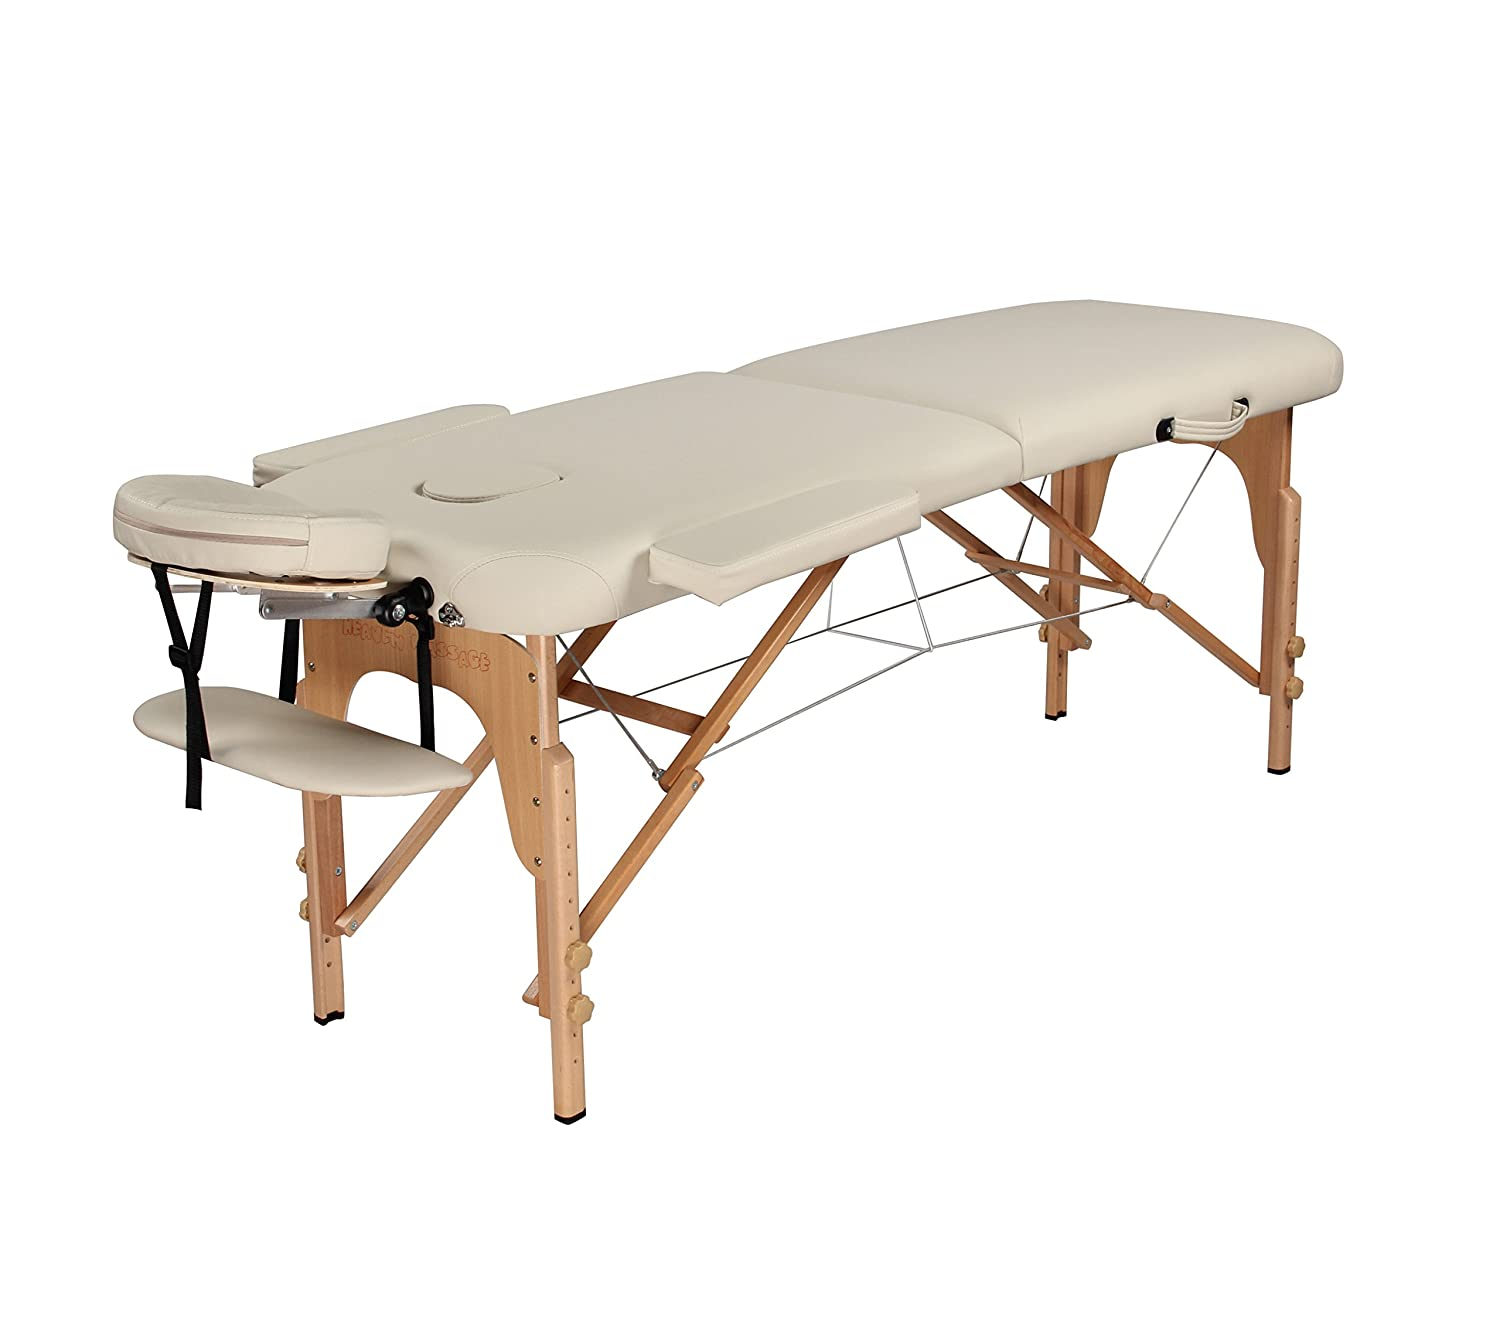 Heaven Massage Ultra lightweight Portable Massage Table - Fits in almost every trunk! Perfect for on the go.. HMTS (CREAM)